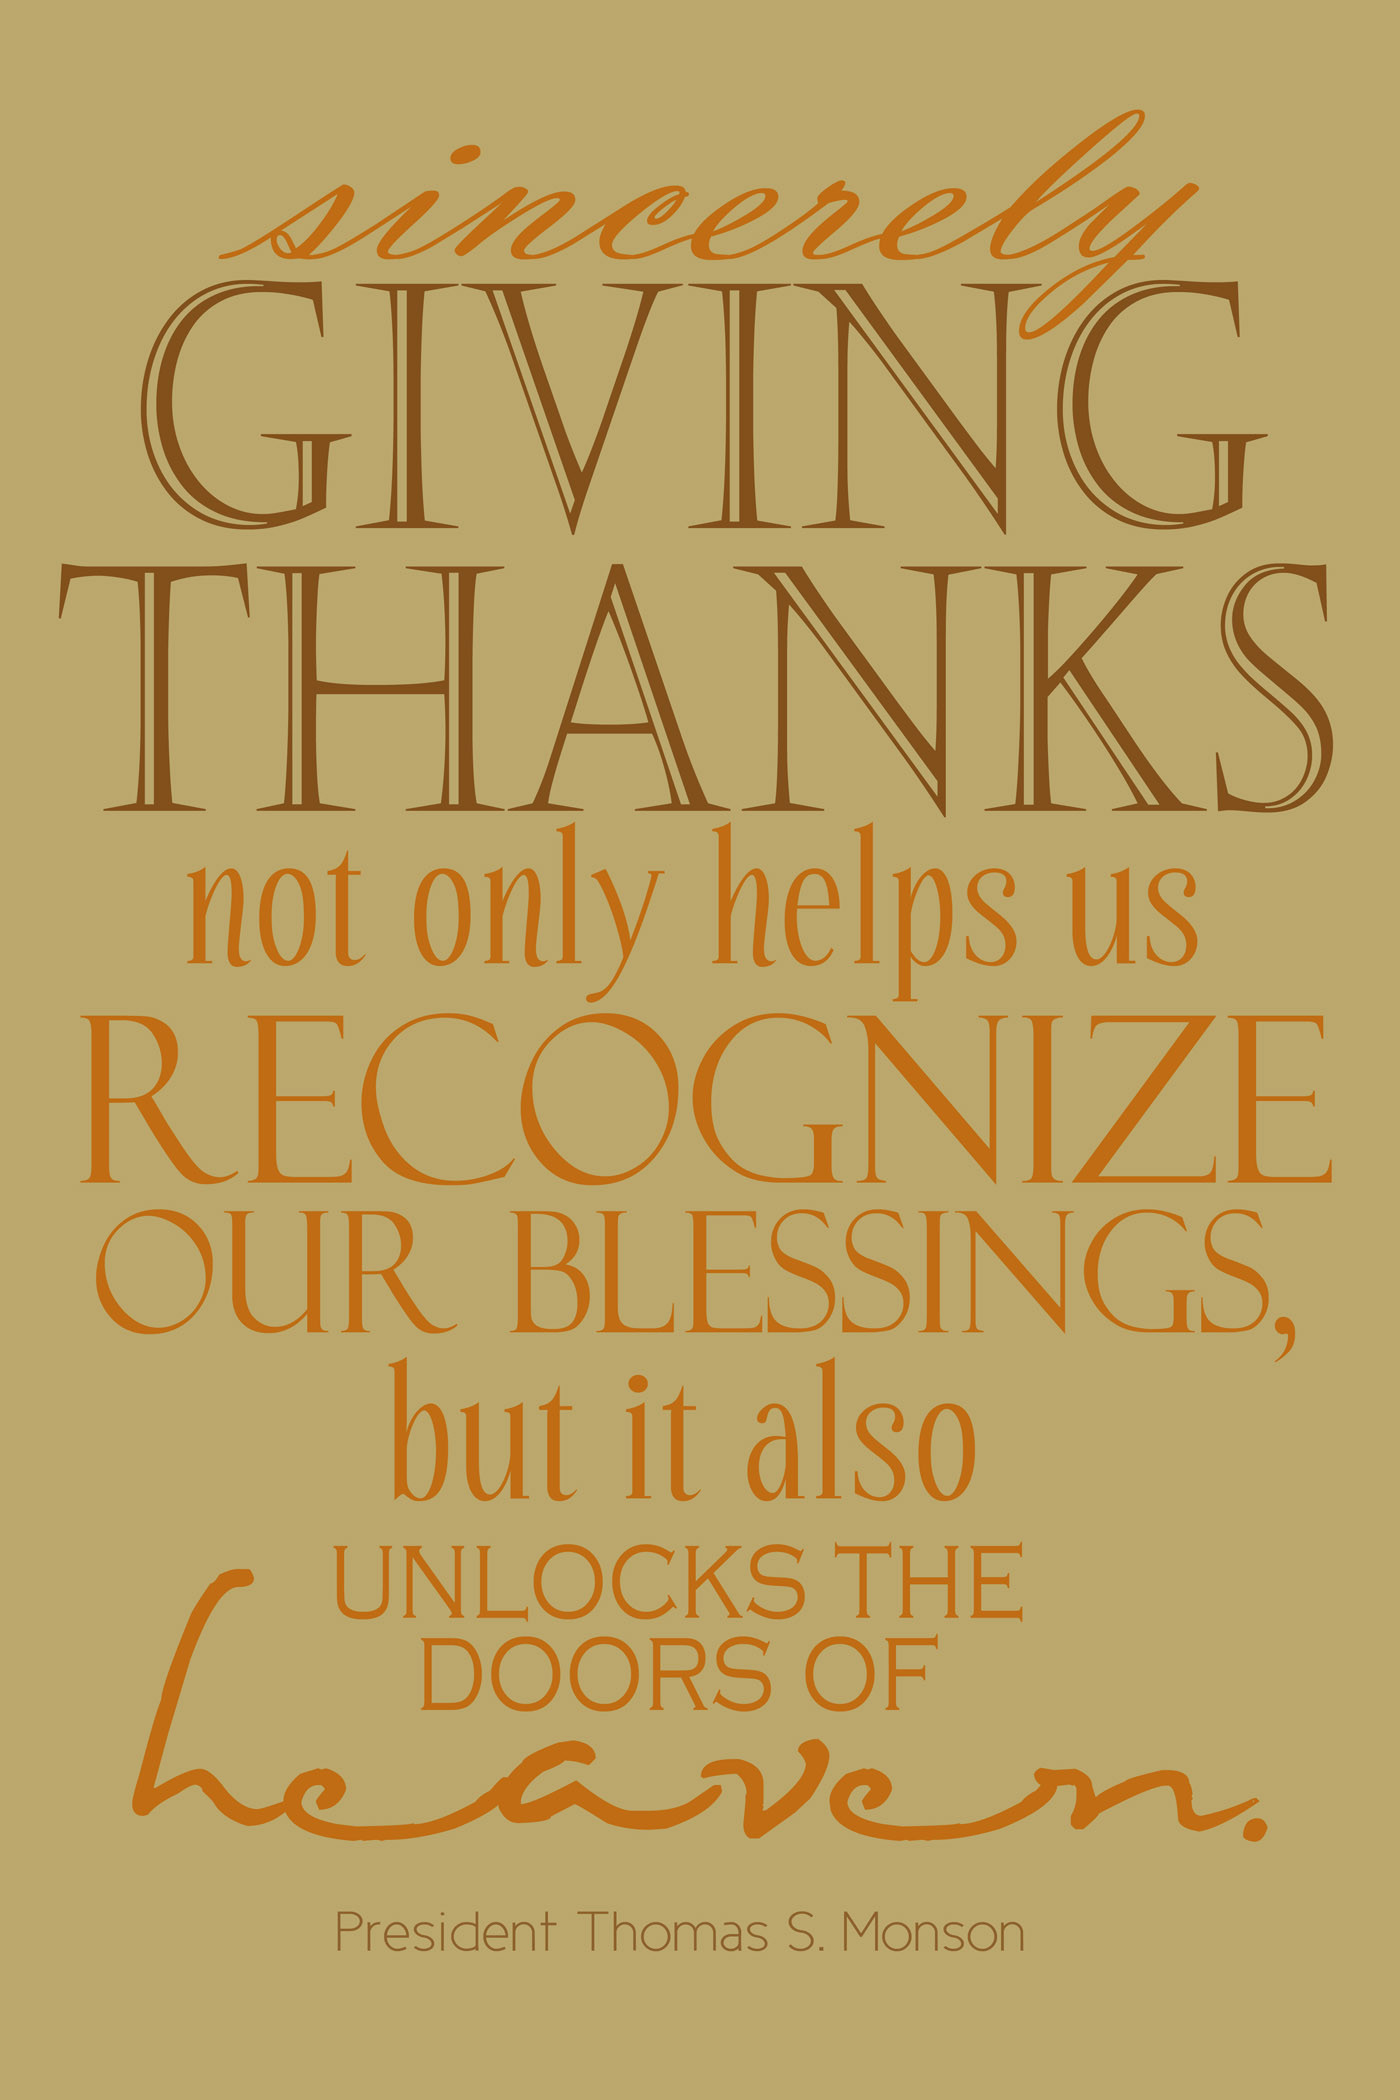 Thanksgiving Turkey Quotes  Quotes From The First Thanksgiving QuotesGram